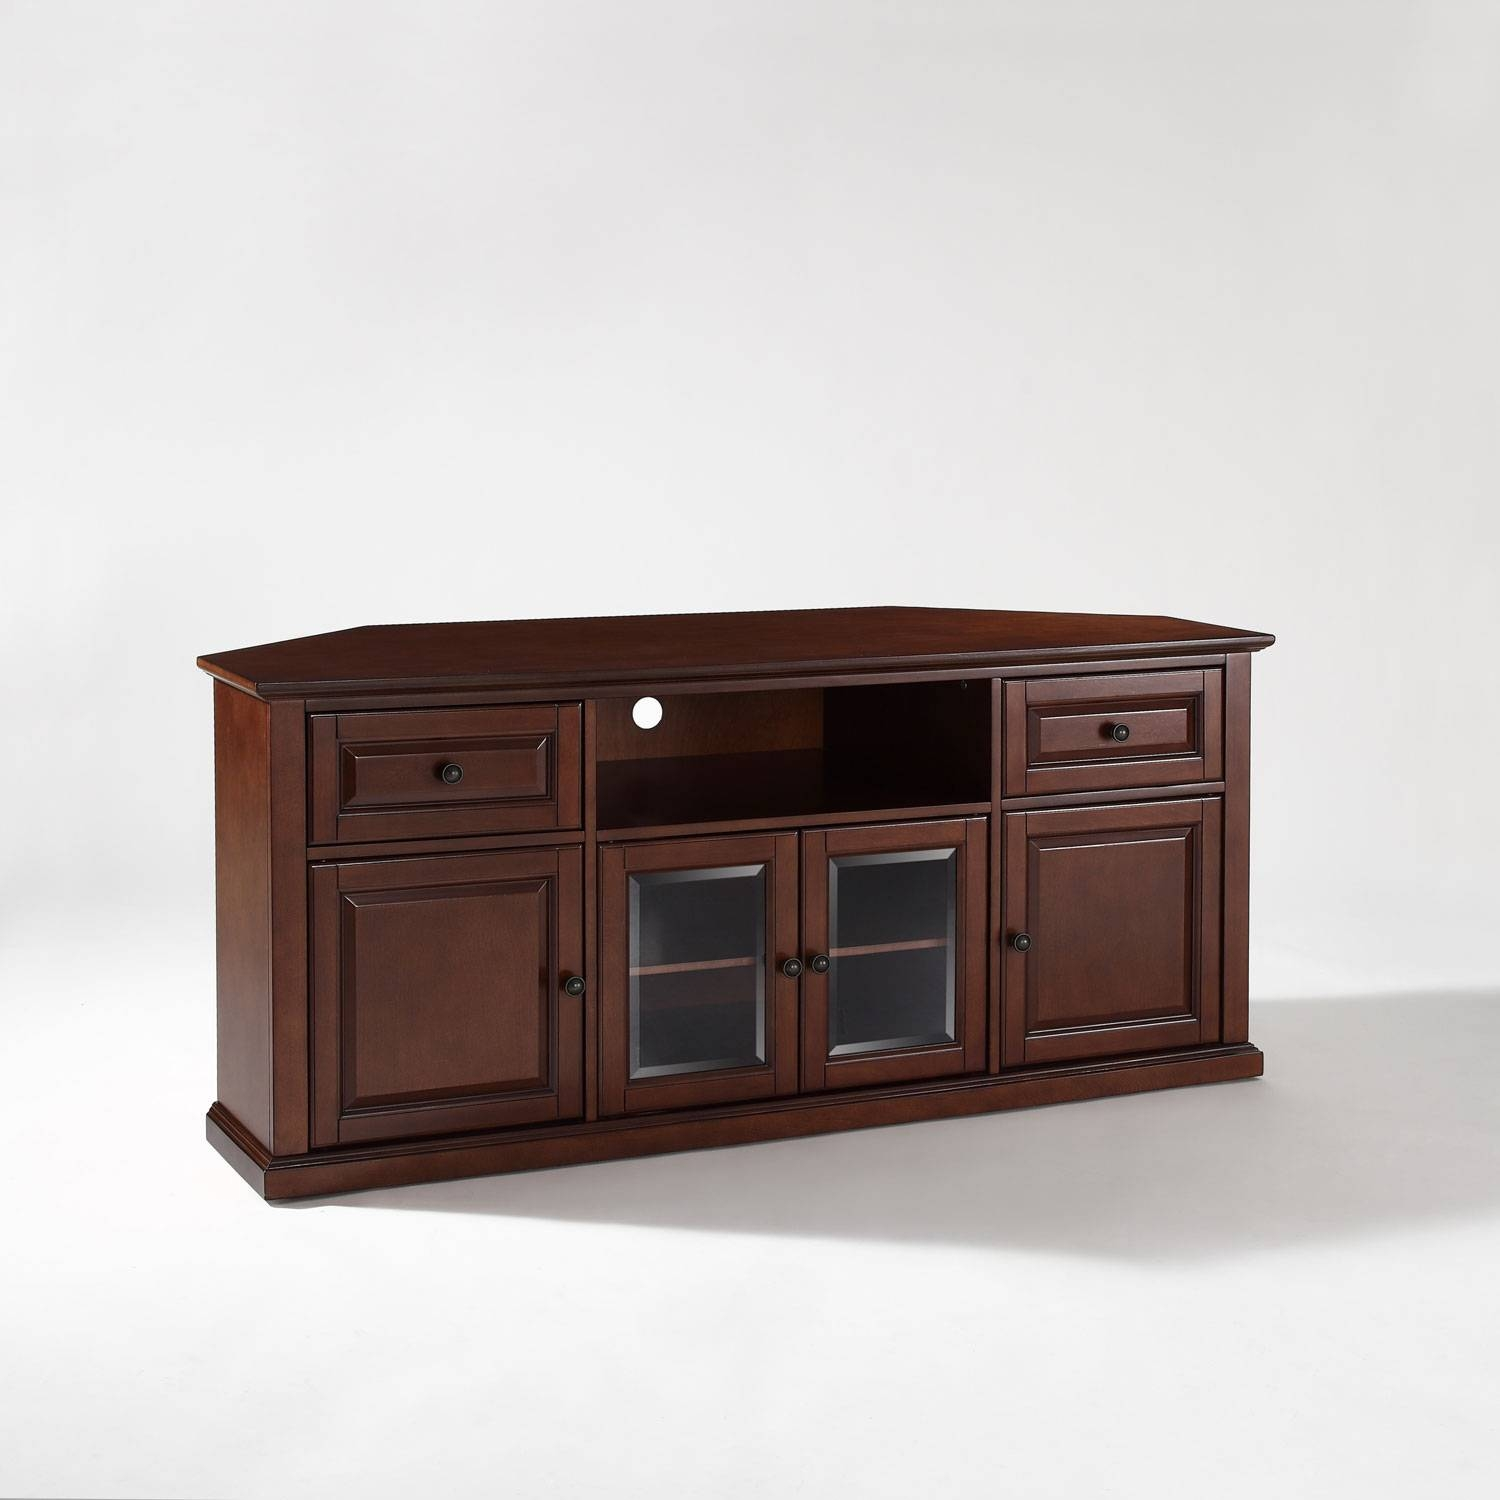 Tv Stands & Cabinets On Sale | Bellacor pertaining to Mahogany Tv Cabinets (Image 13 of 15)